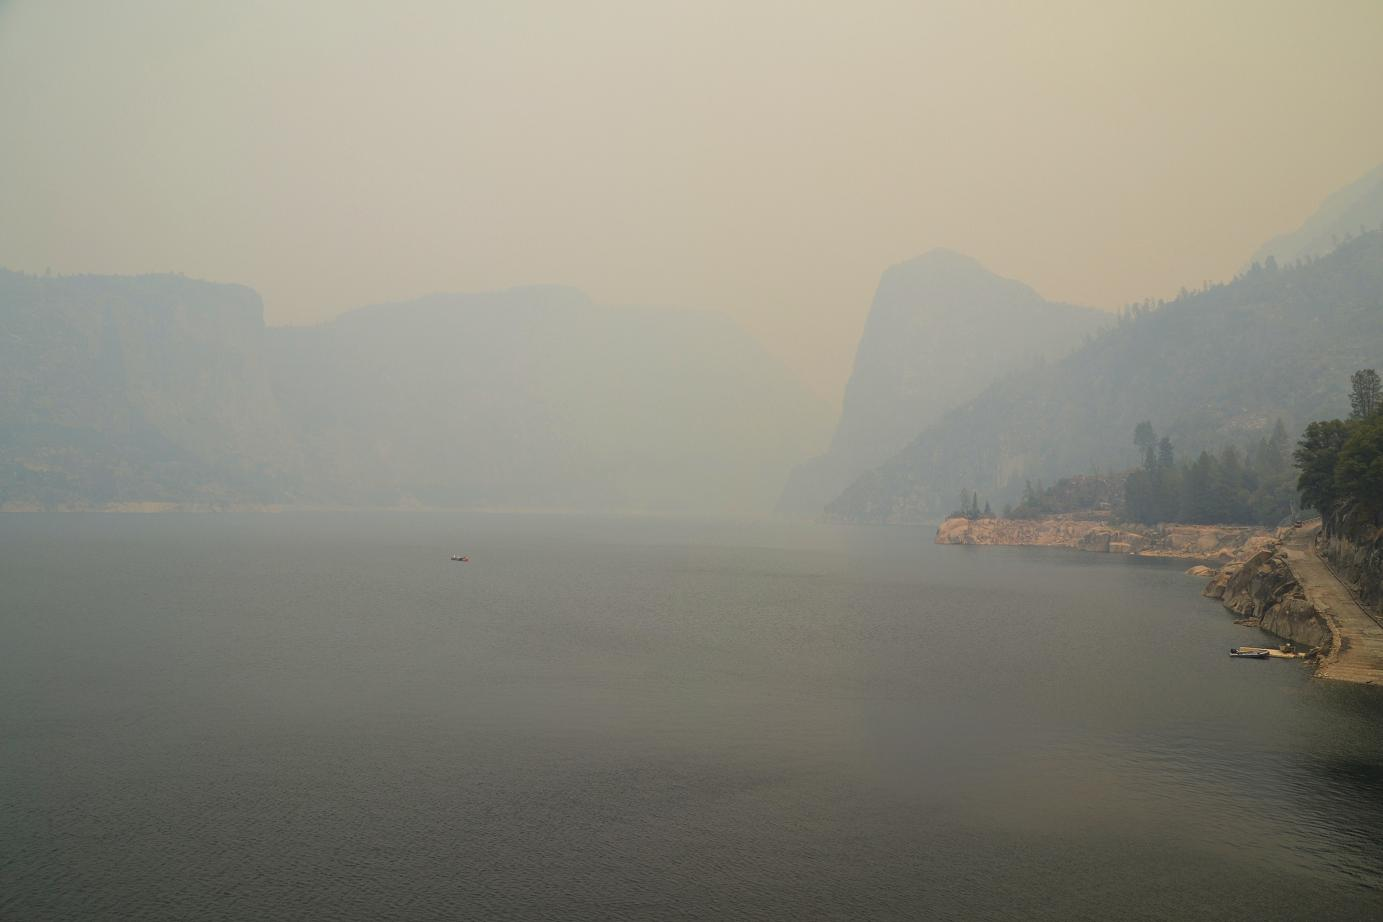 Hetch Hetchy from the dam - photo by Gina Clugston